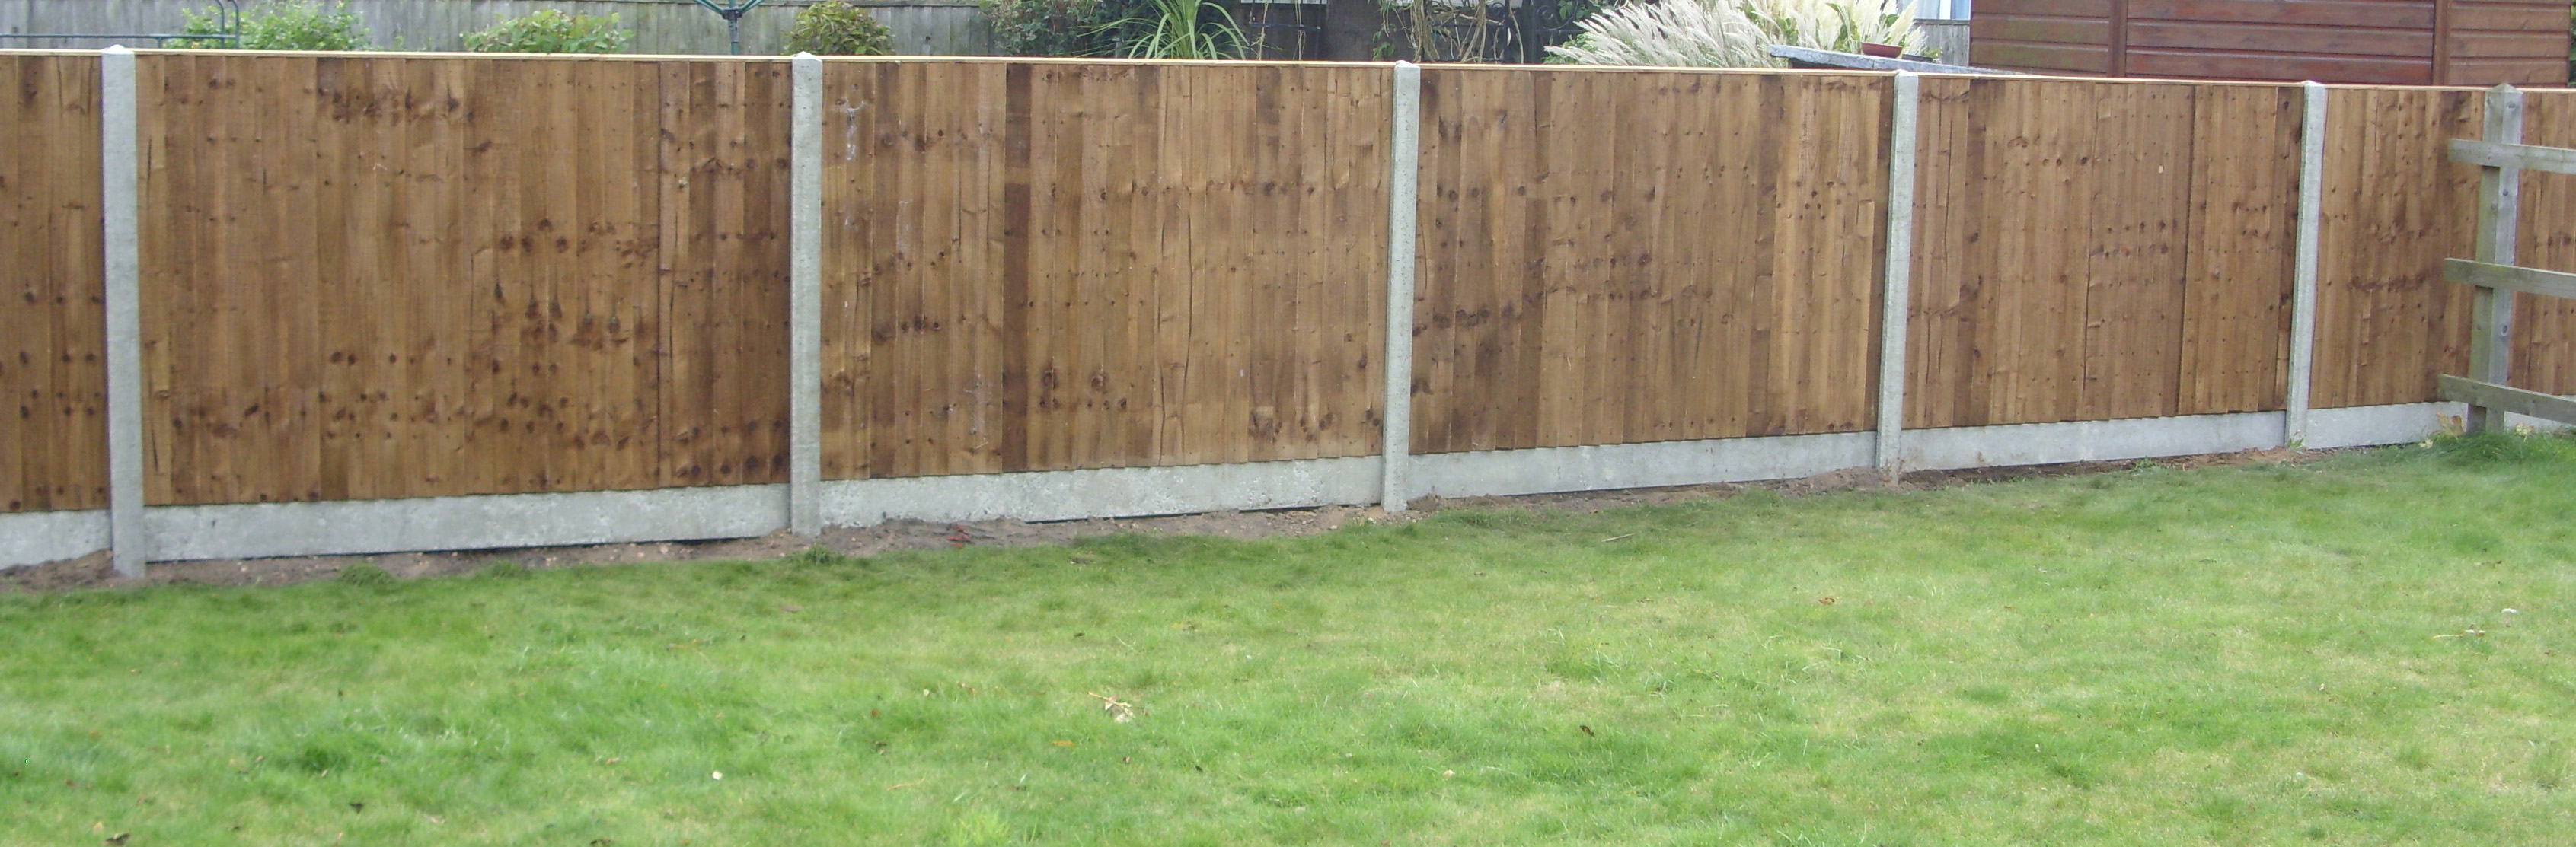 Closeboard panels on concrete posts